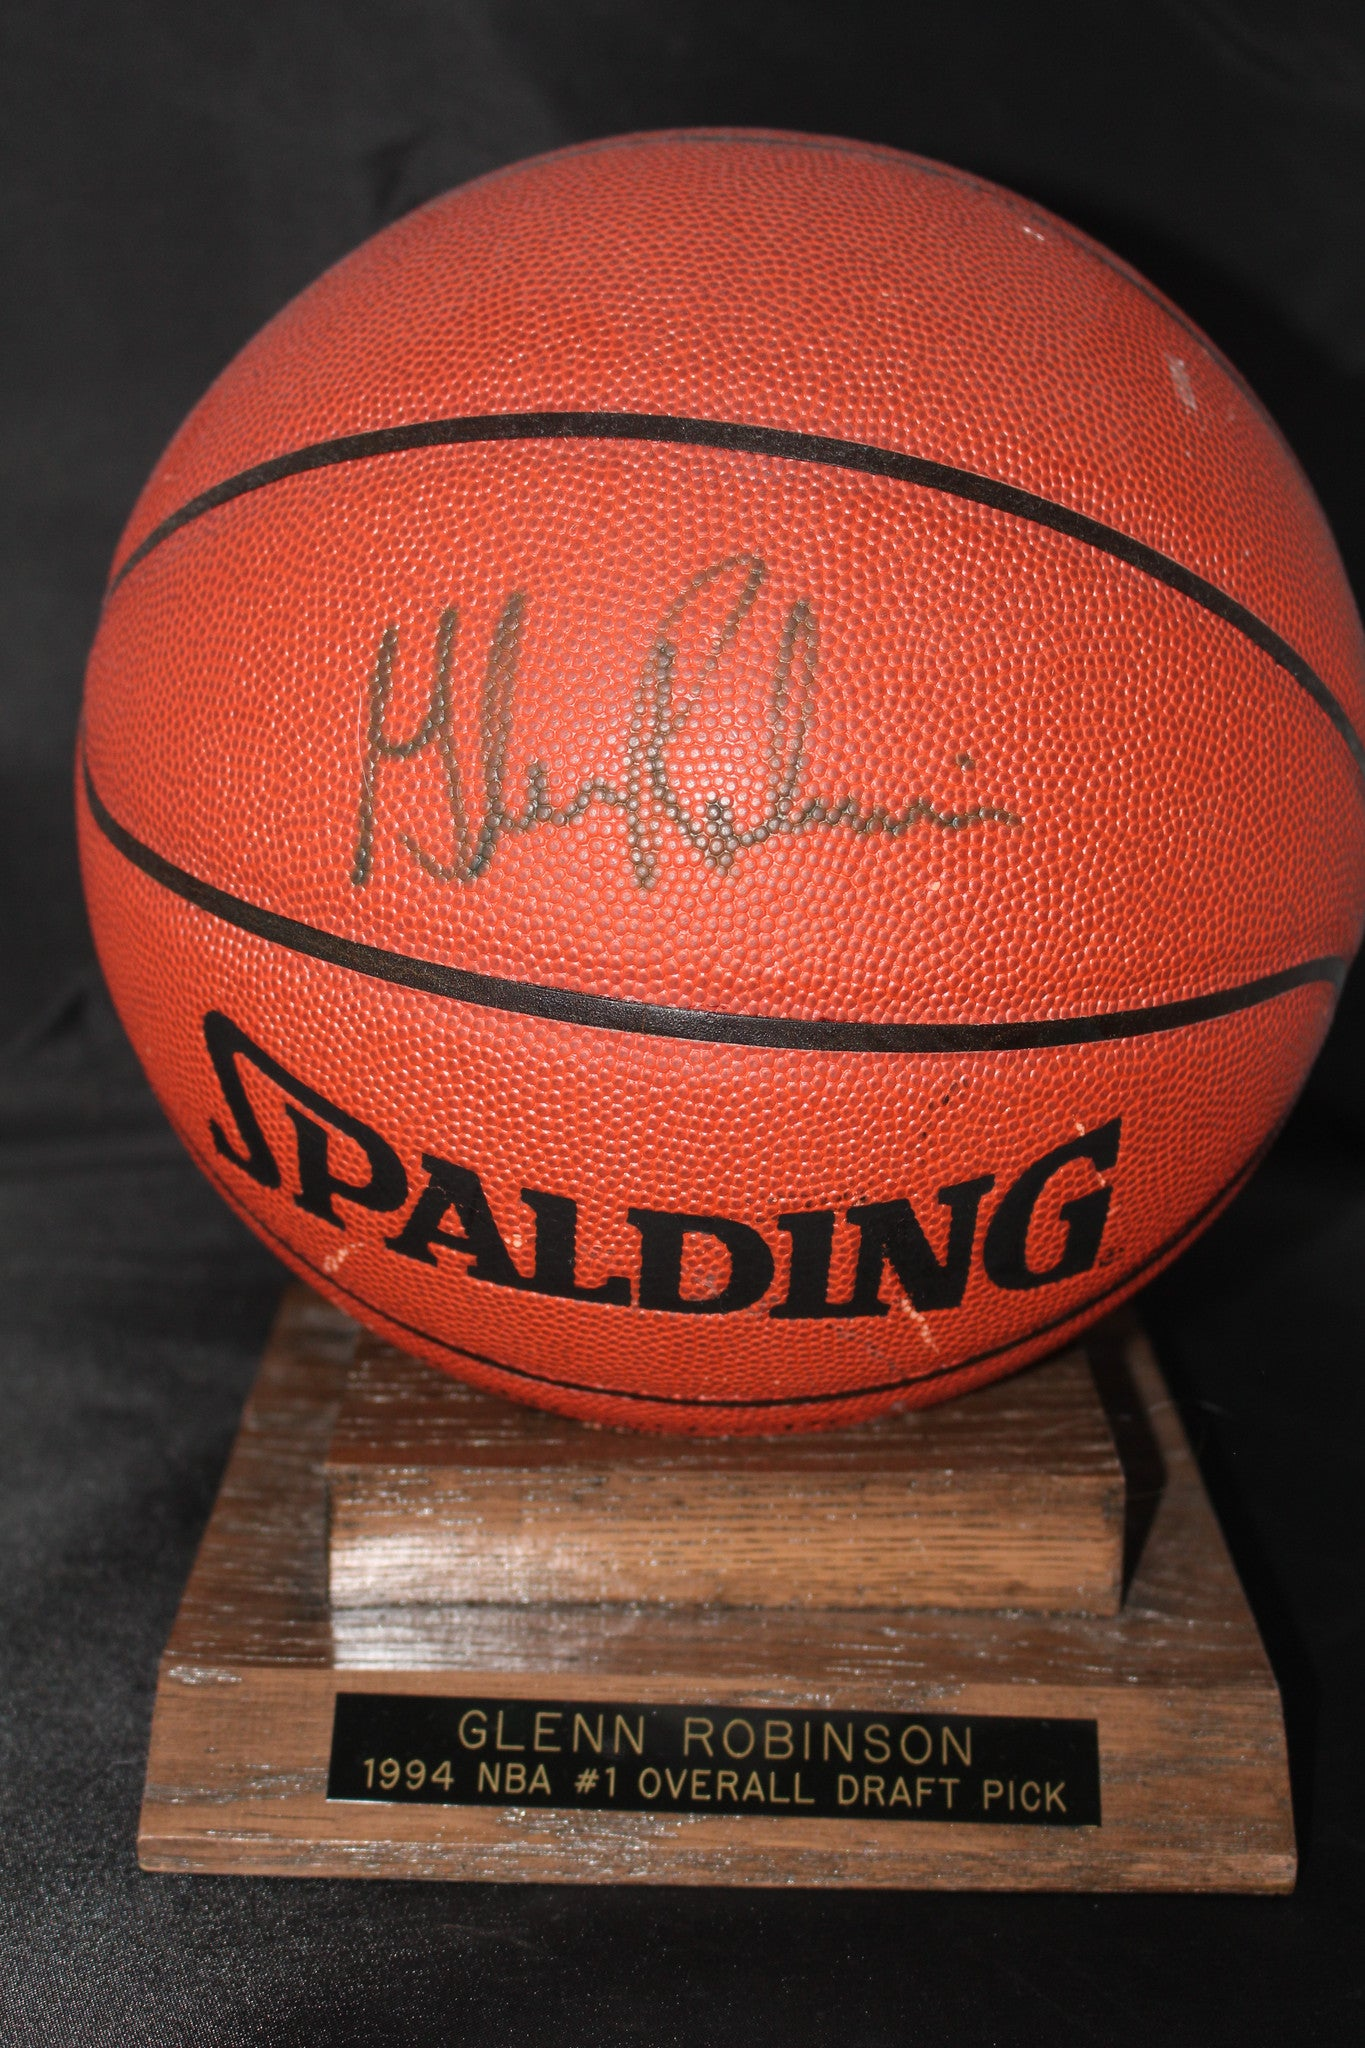 Glen Robinson Autographed Basketball w/base - Vintage Indy Sports